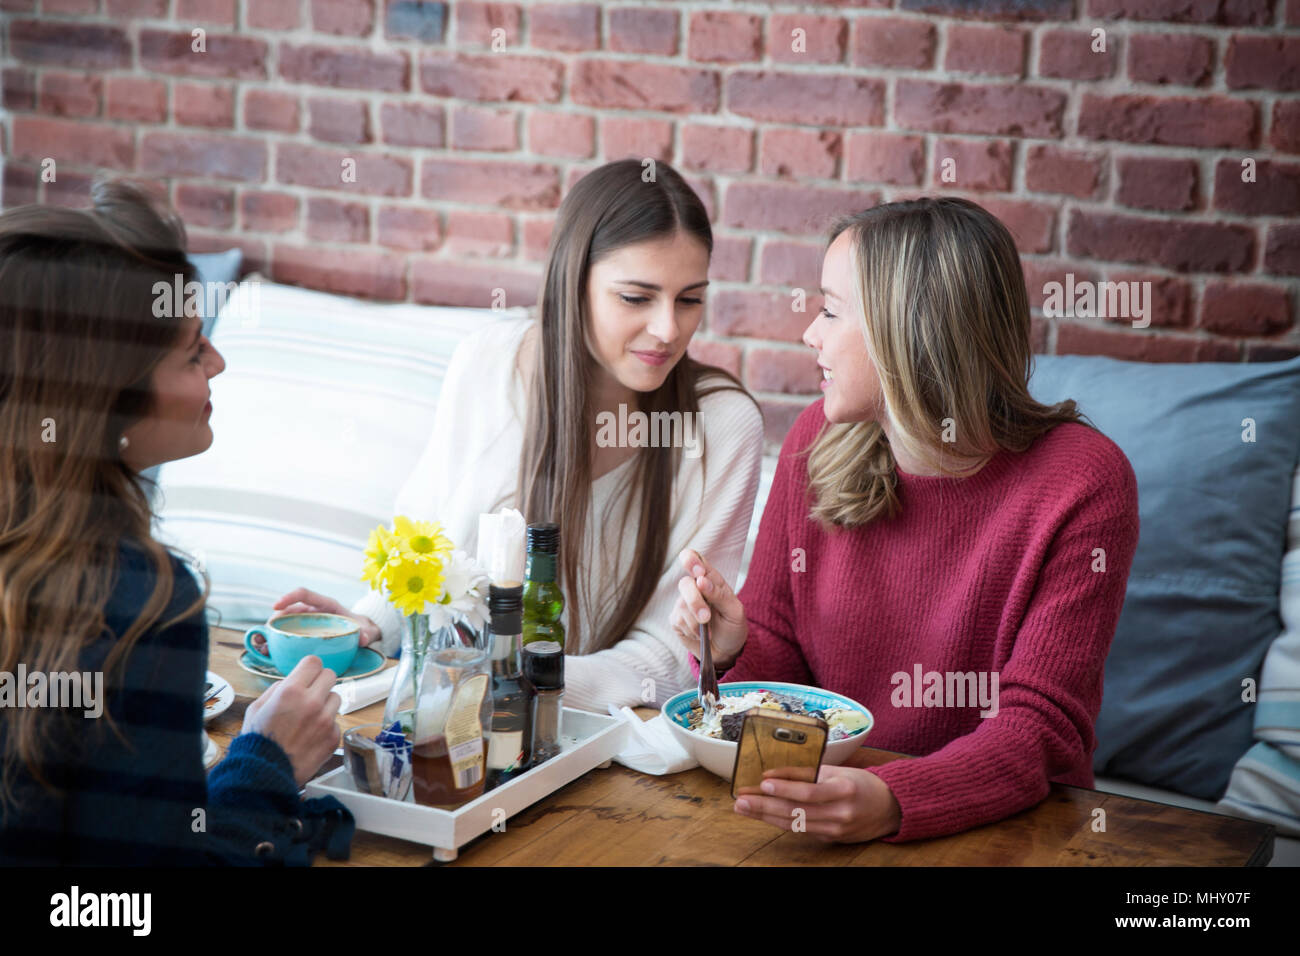 Three female friends, sitting together in cafe - Stock Image